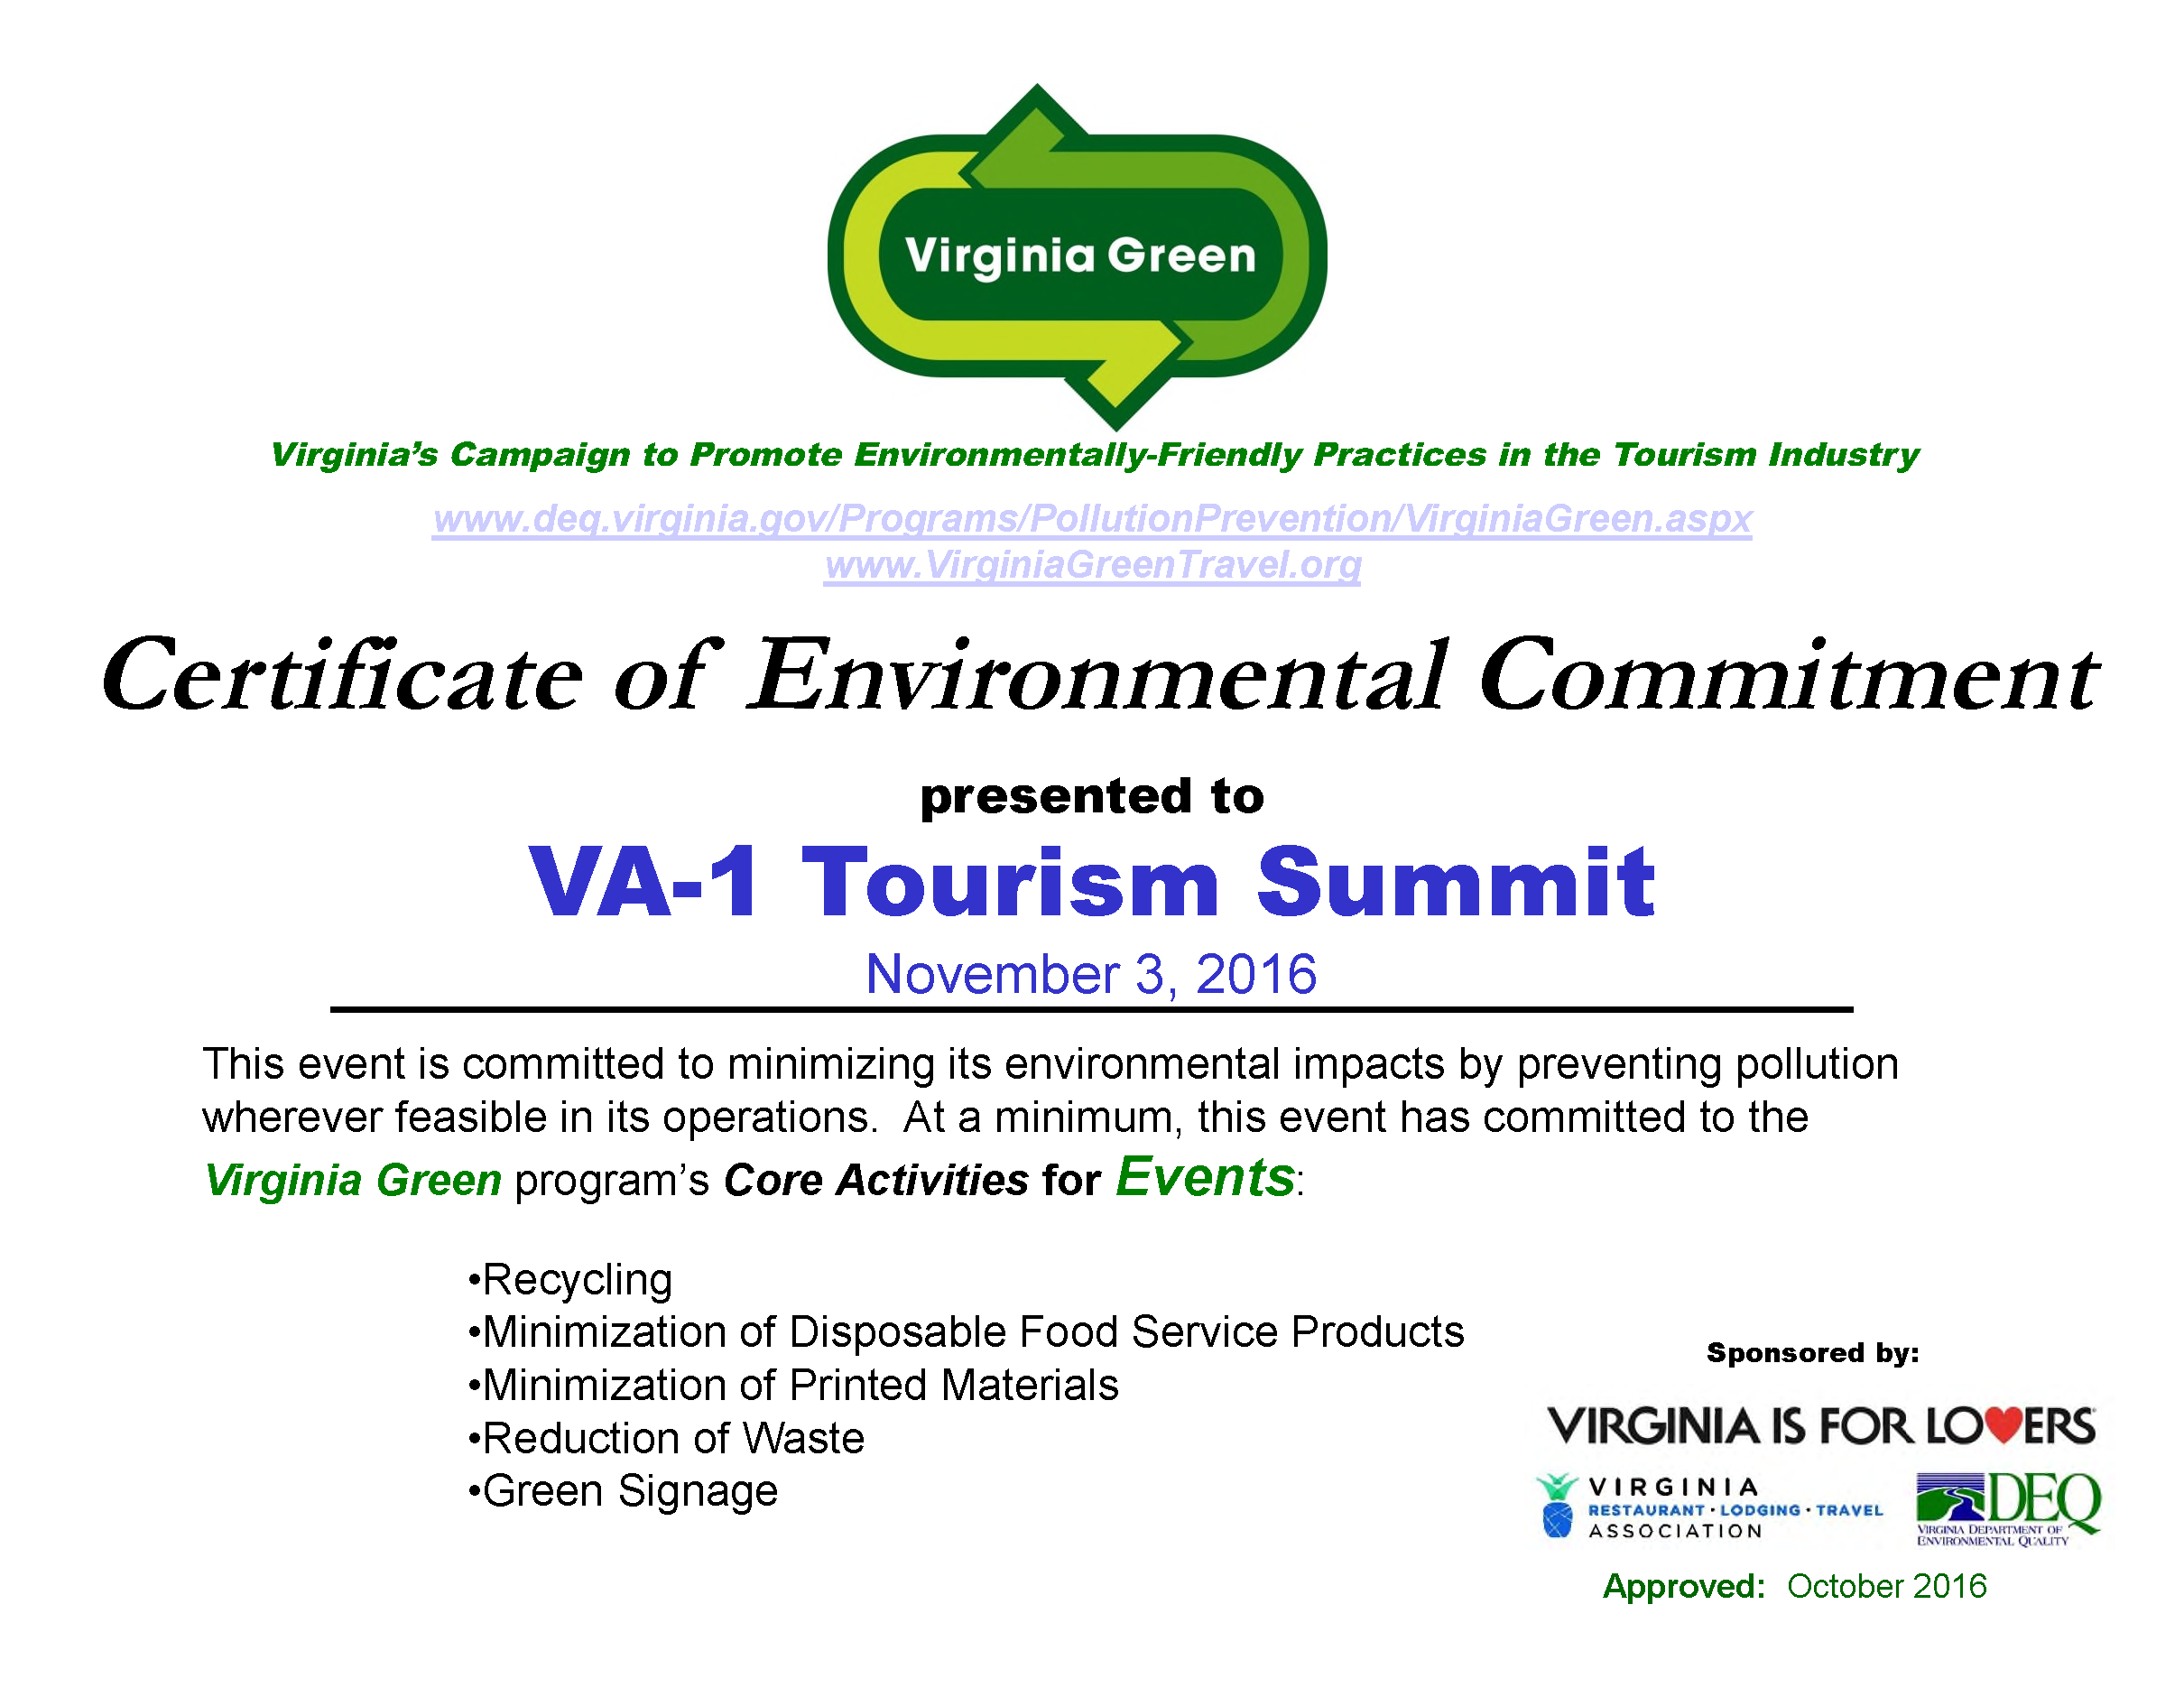 va-1-tourism-summit-certificate-2016